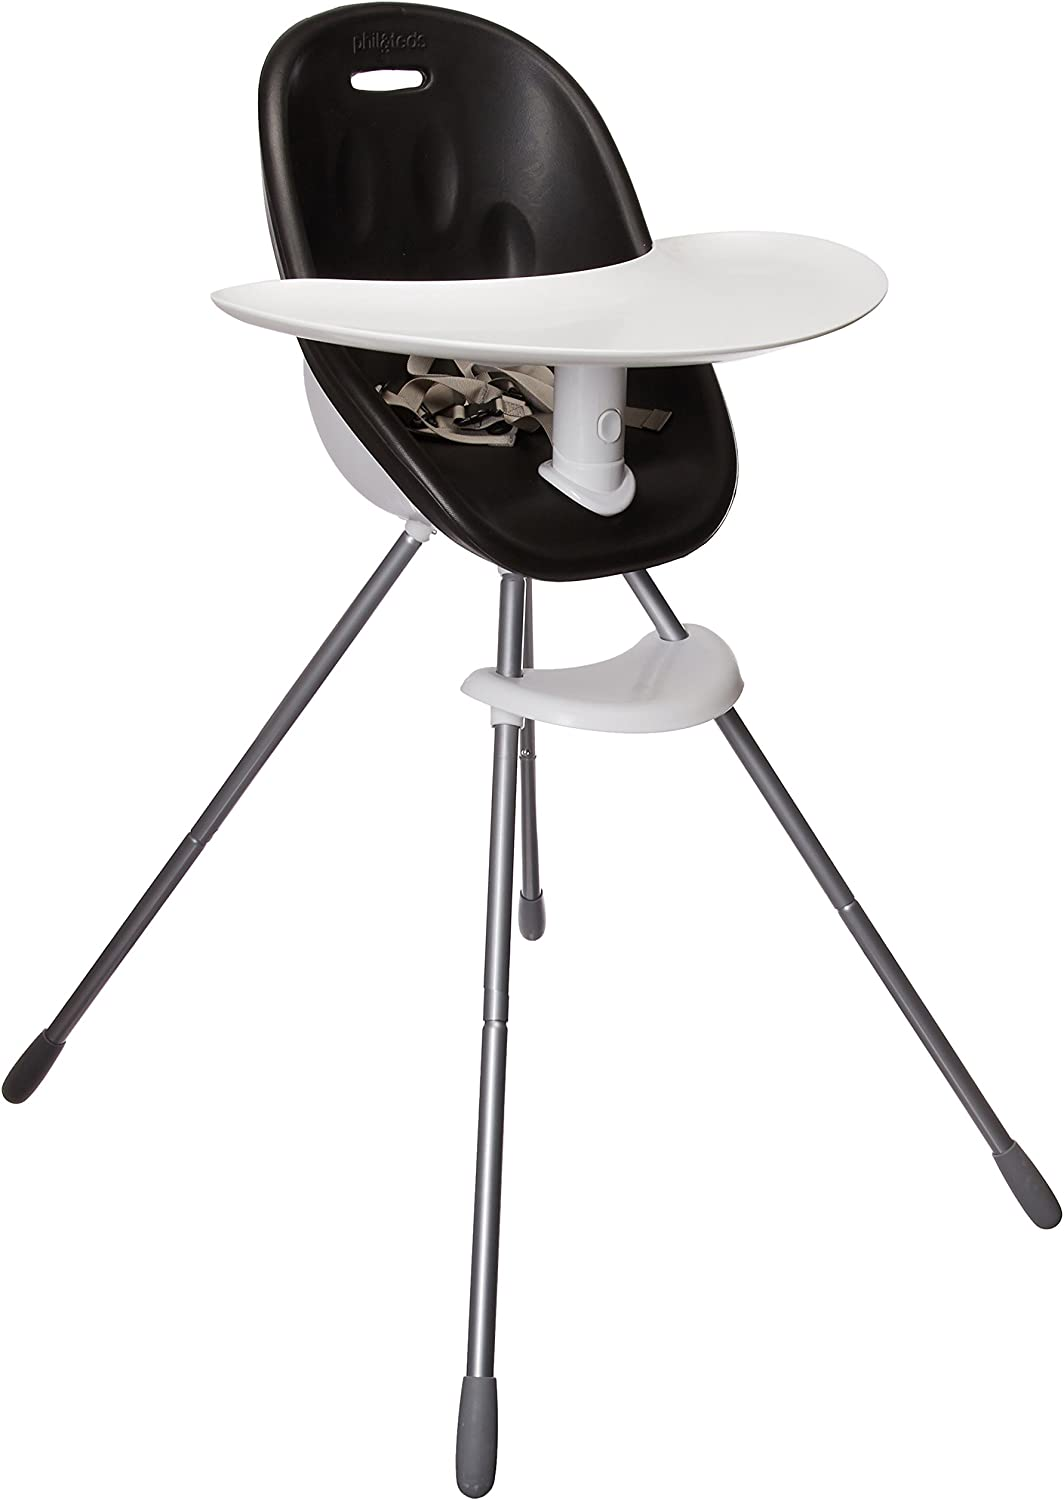 Phil /& Teds Poppy Highchair 2 in 1